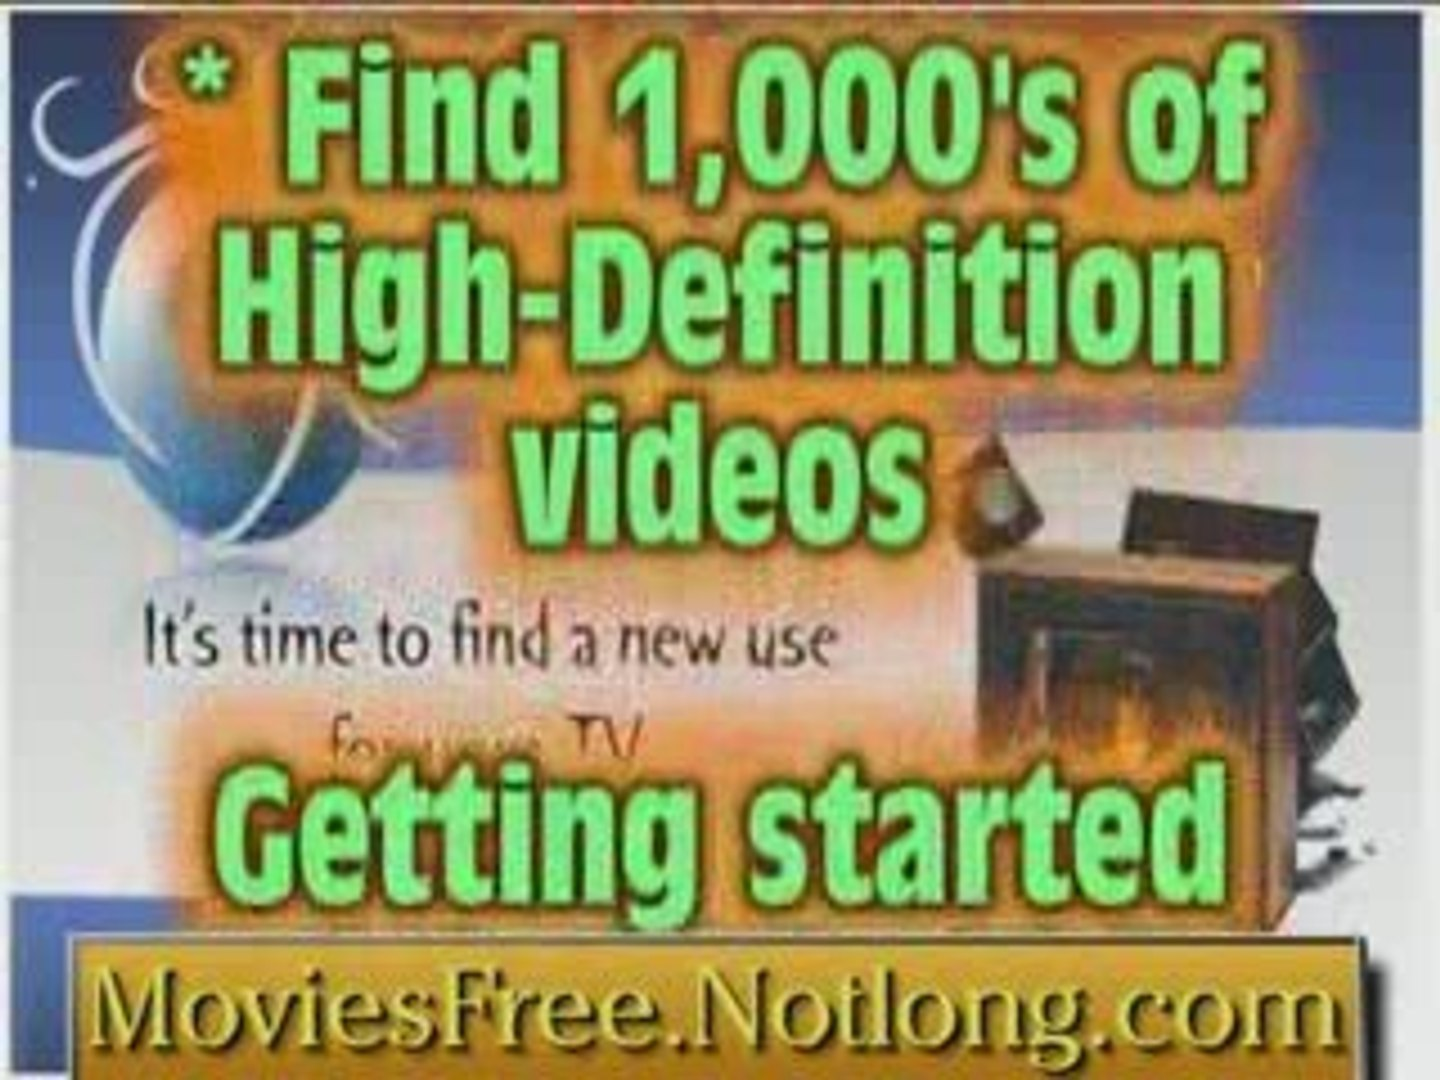 Download Movies for Free - Get action movies free!